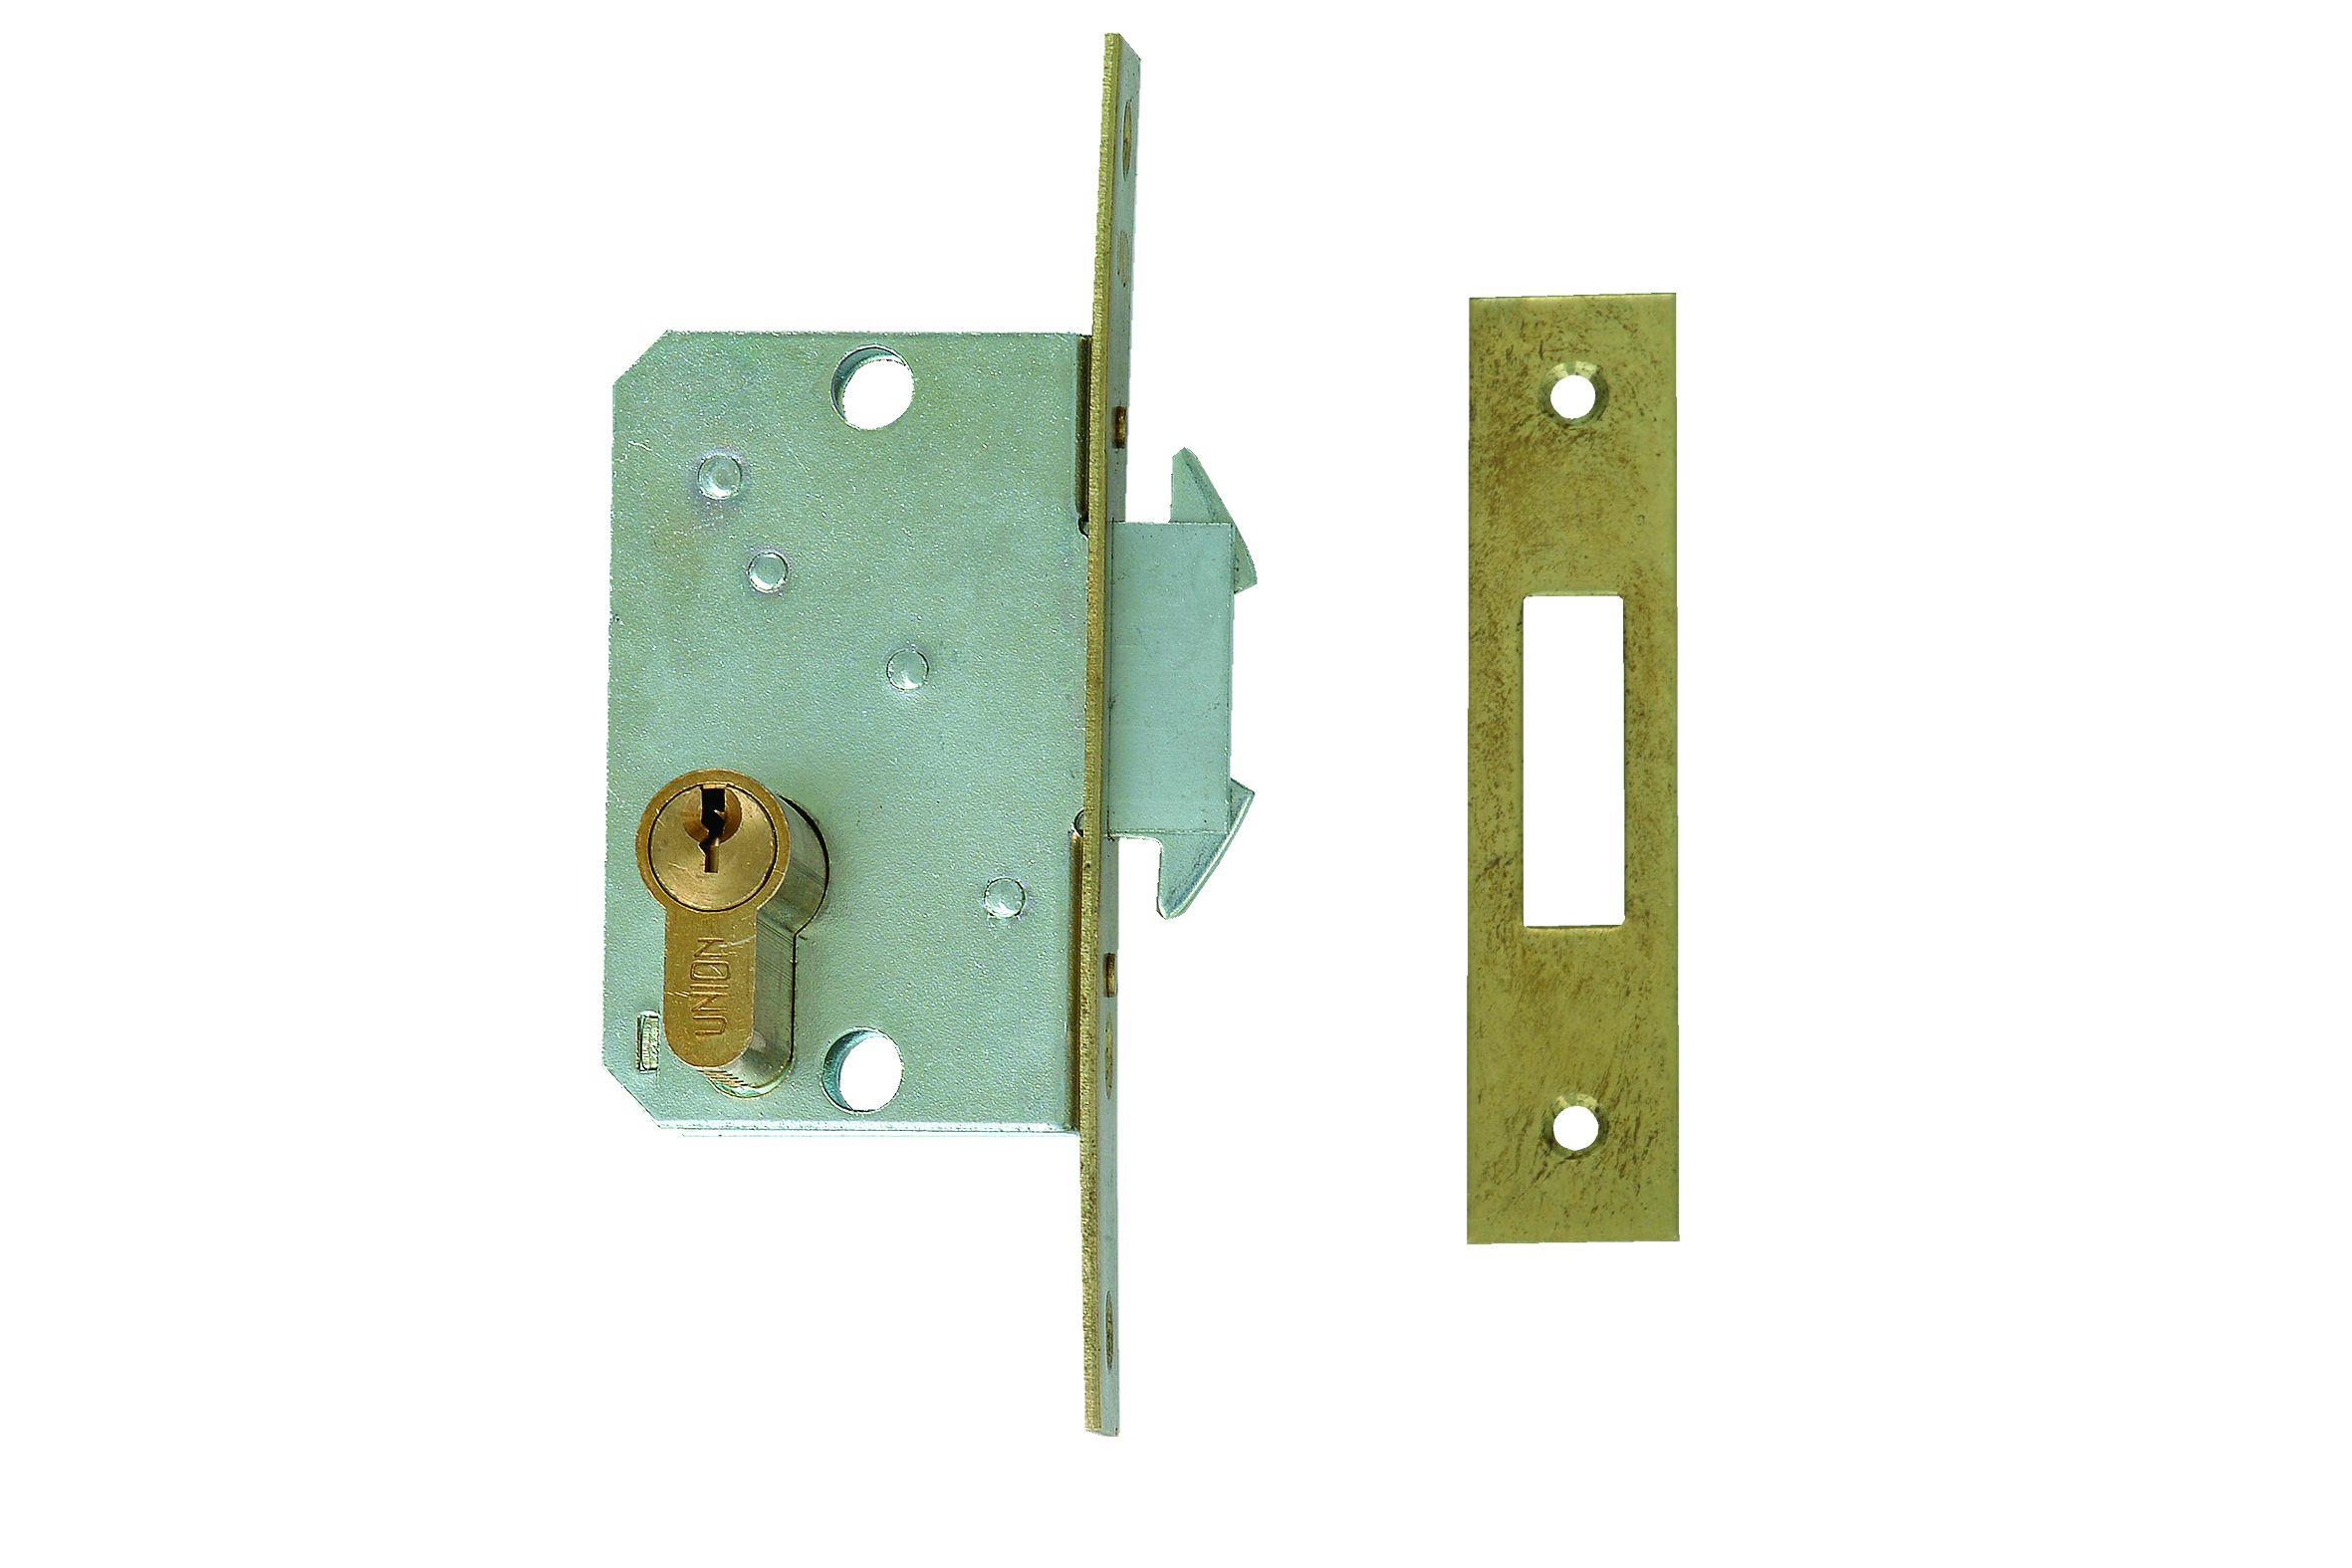 L-24315-55 - Narrow Stile Euro Profile Cylinder Wing Bolt Sliding Door Lock